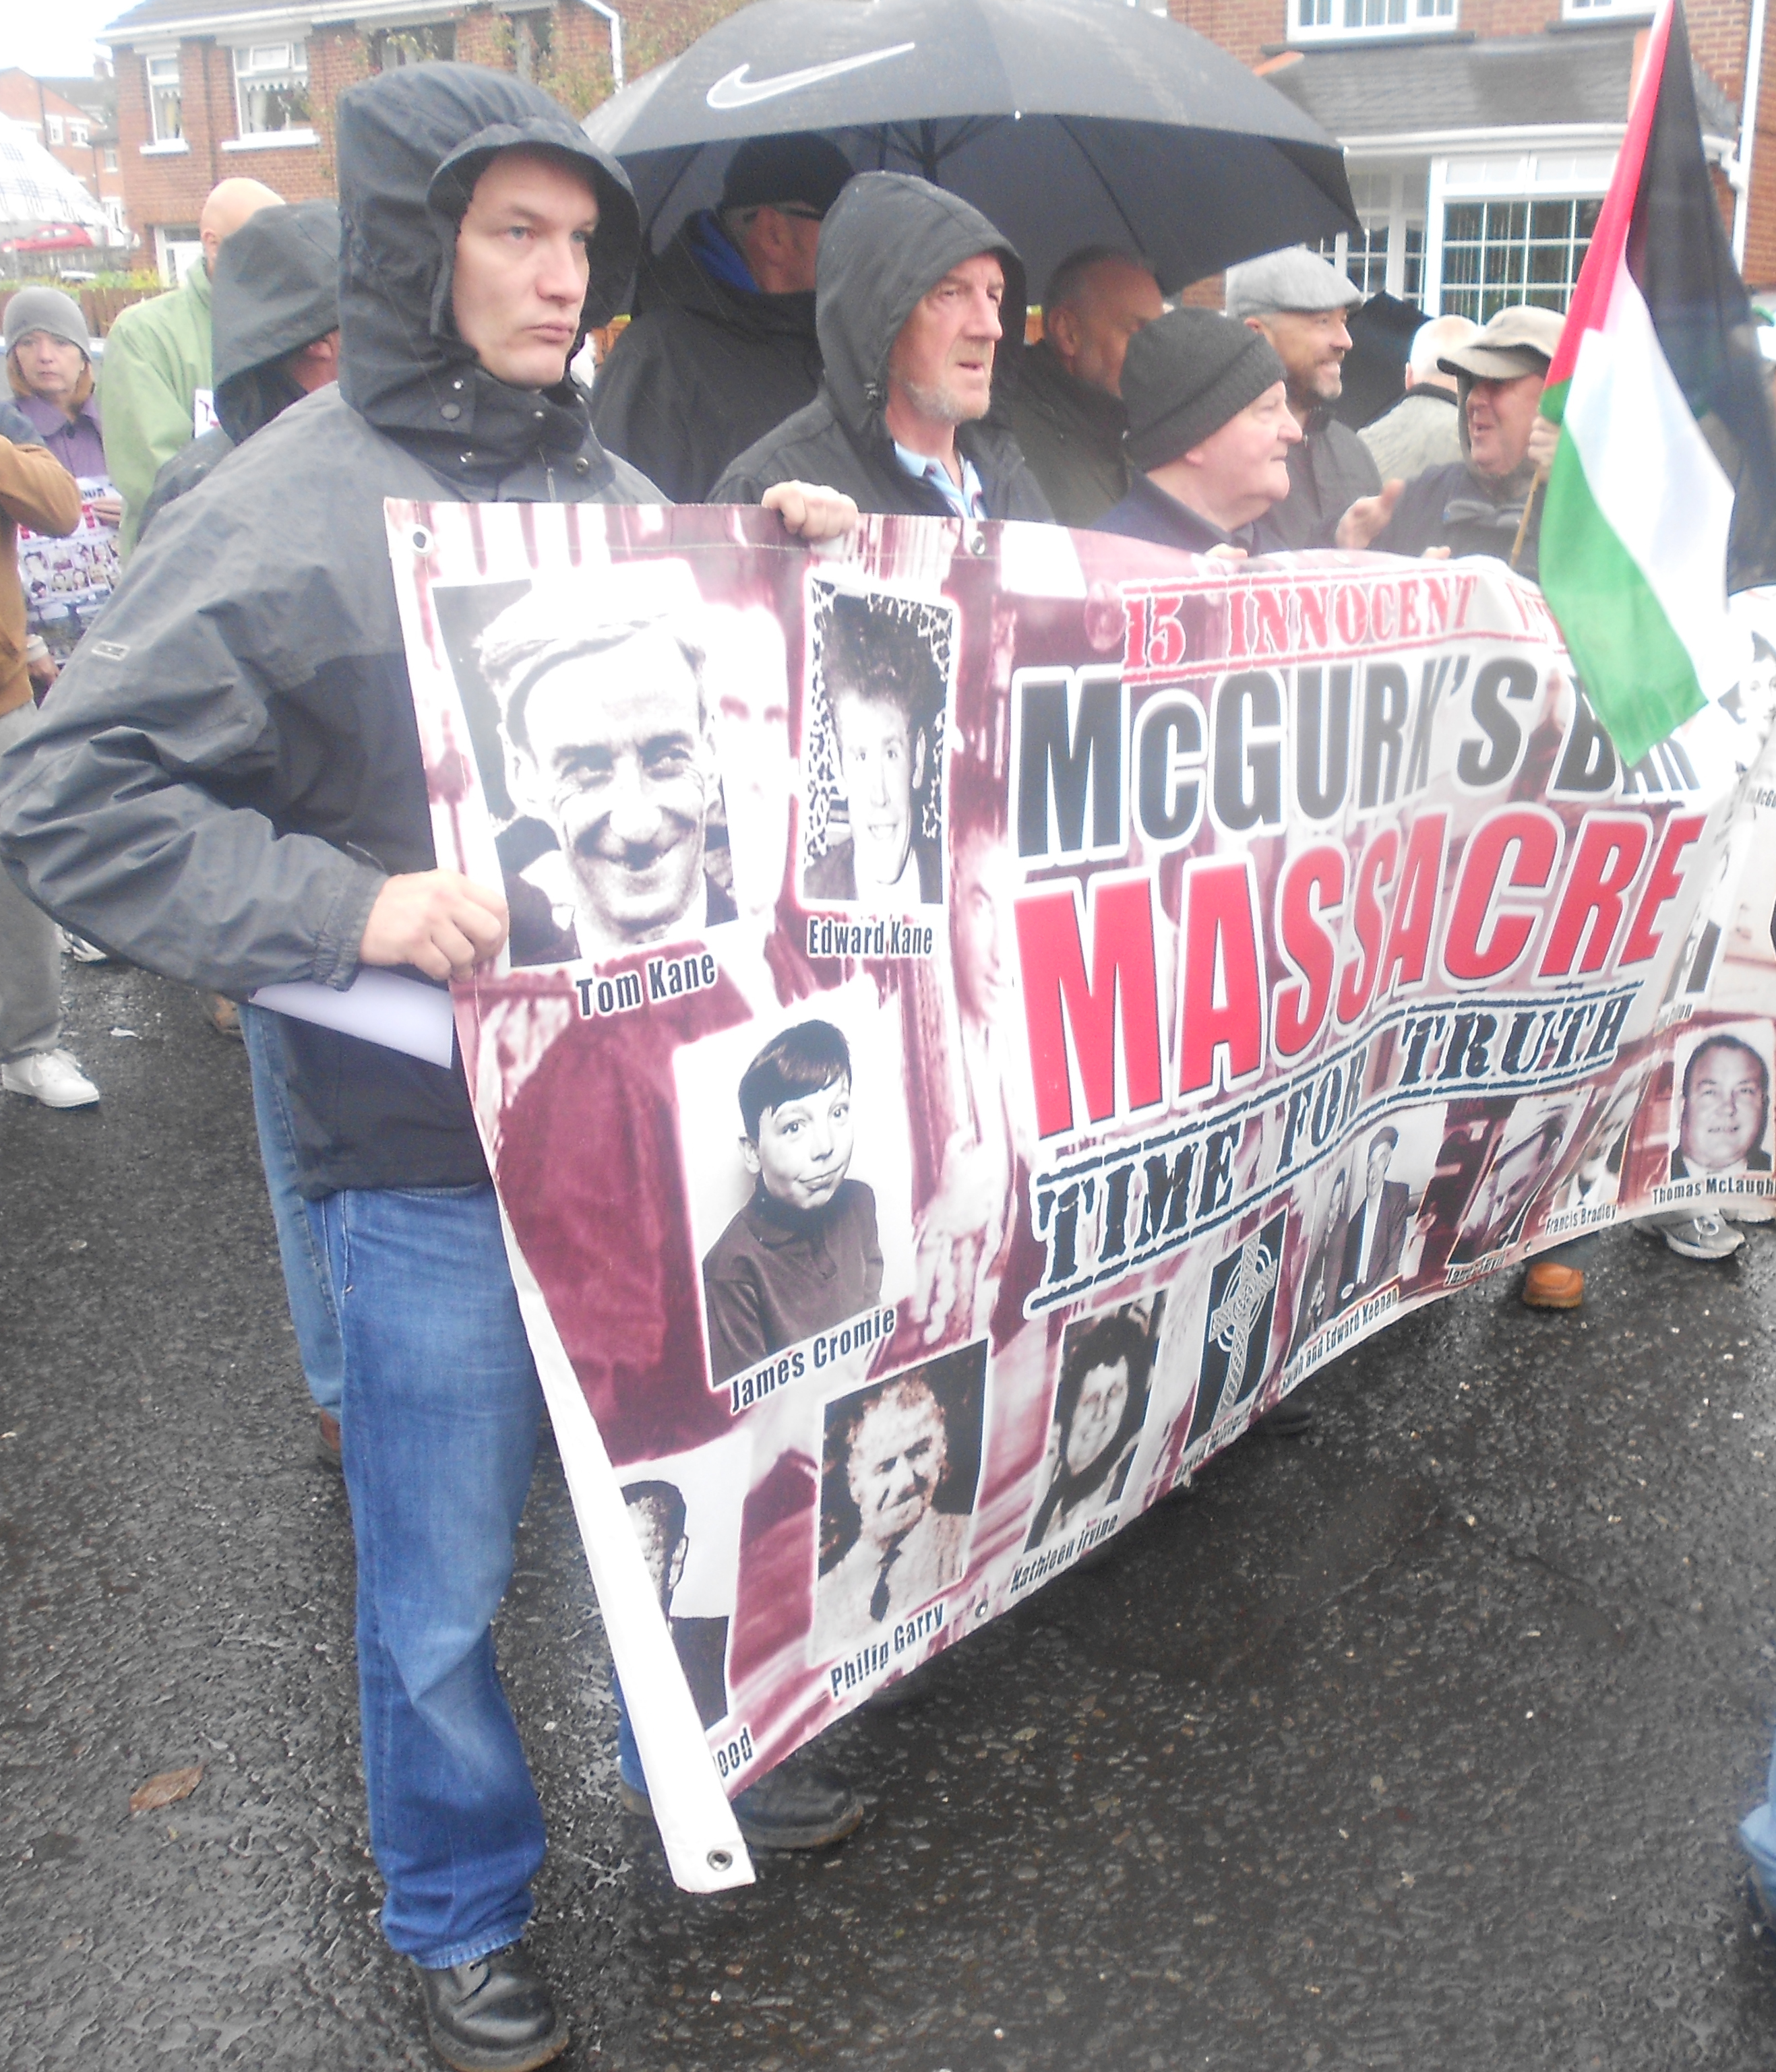 Ciarán MacAirt and other McGurk's Bar family campaigners